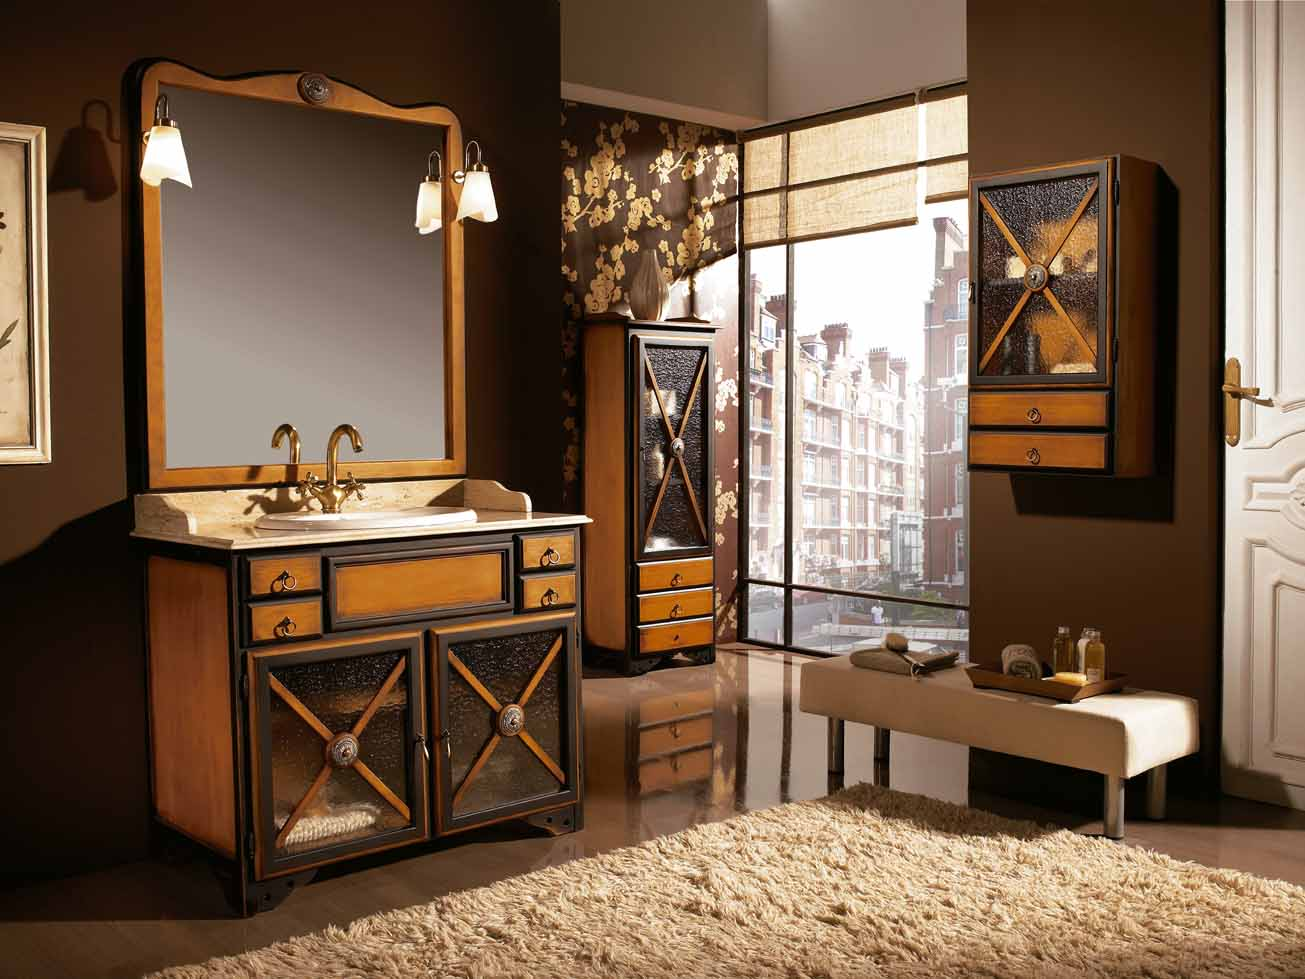 mediterrane helle badm bel inspiration. Black Bedroom Furniture Sets. Home Design Ideas